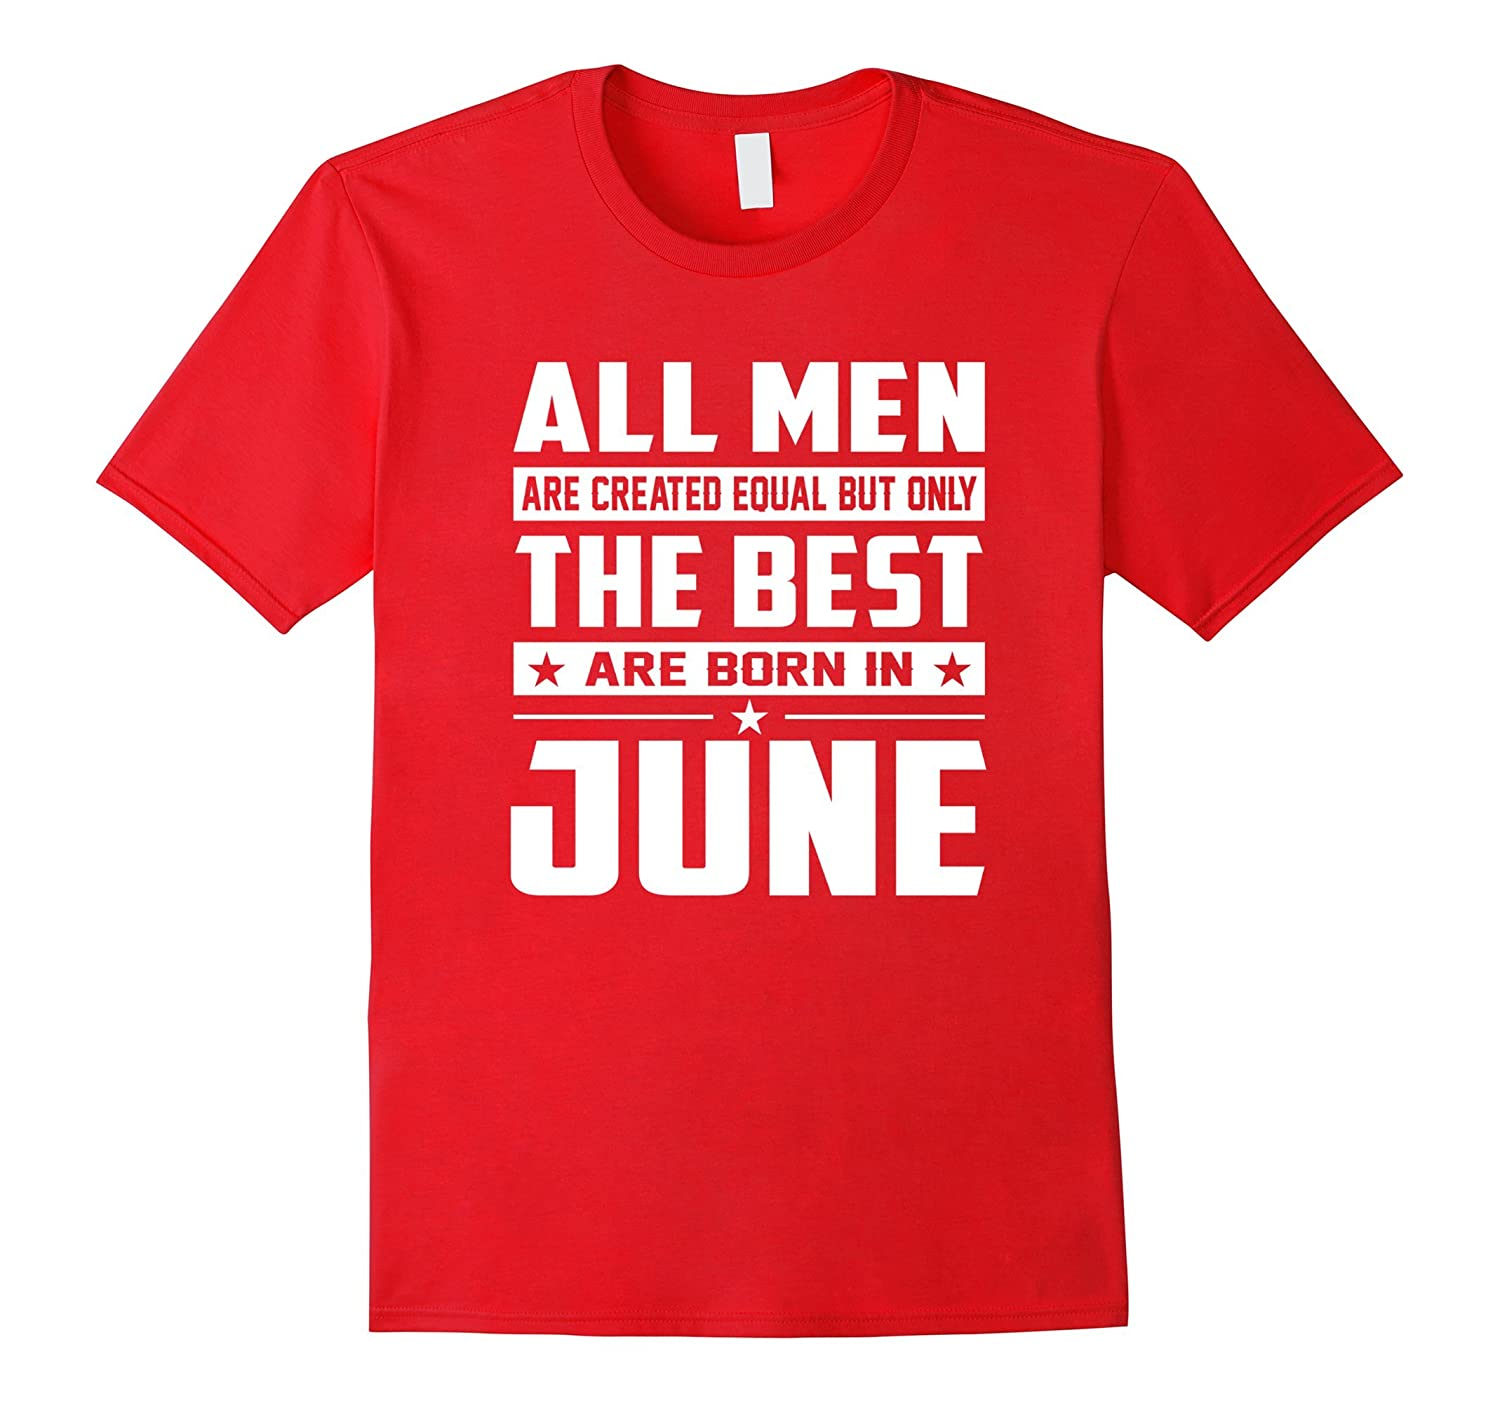 All Men Are Created Equal But Only The Best Are Born In June-TD